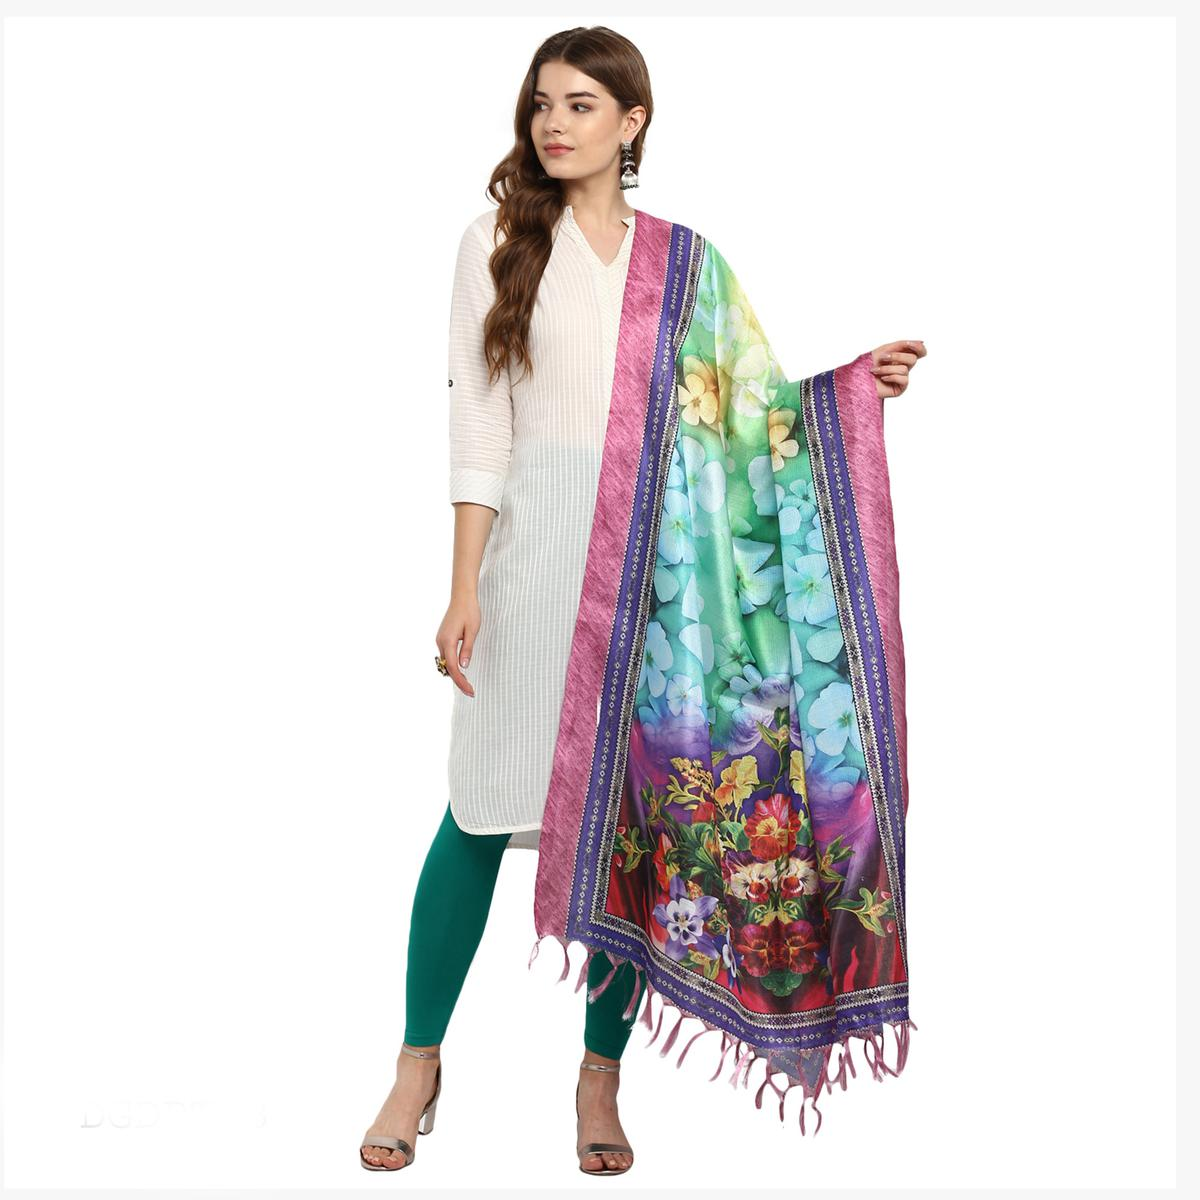 Mesmerising Multicolored Digital Printed Khadi Silk Dupatta